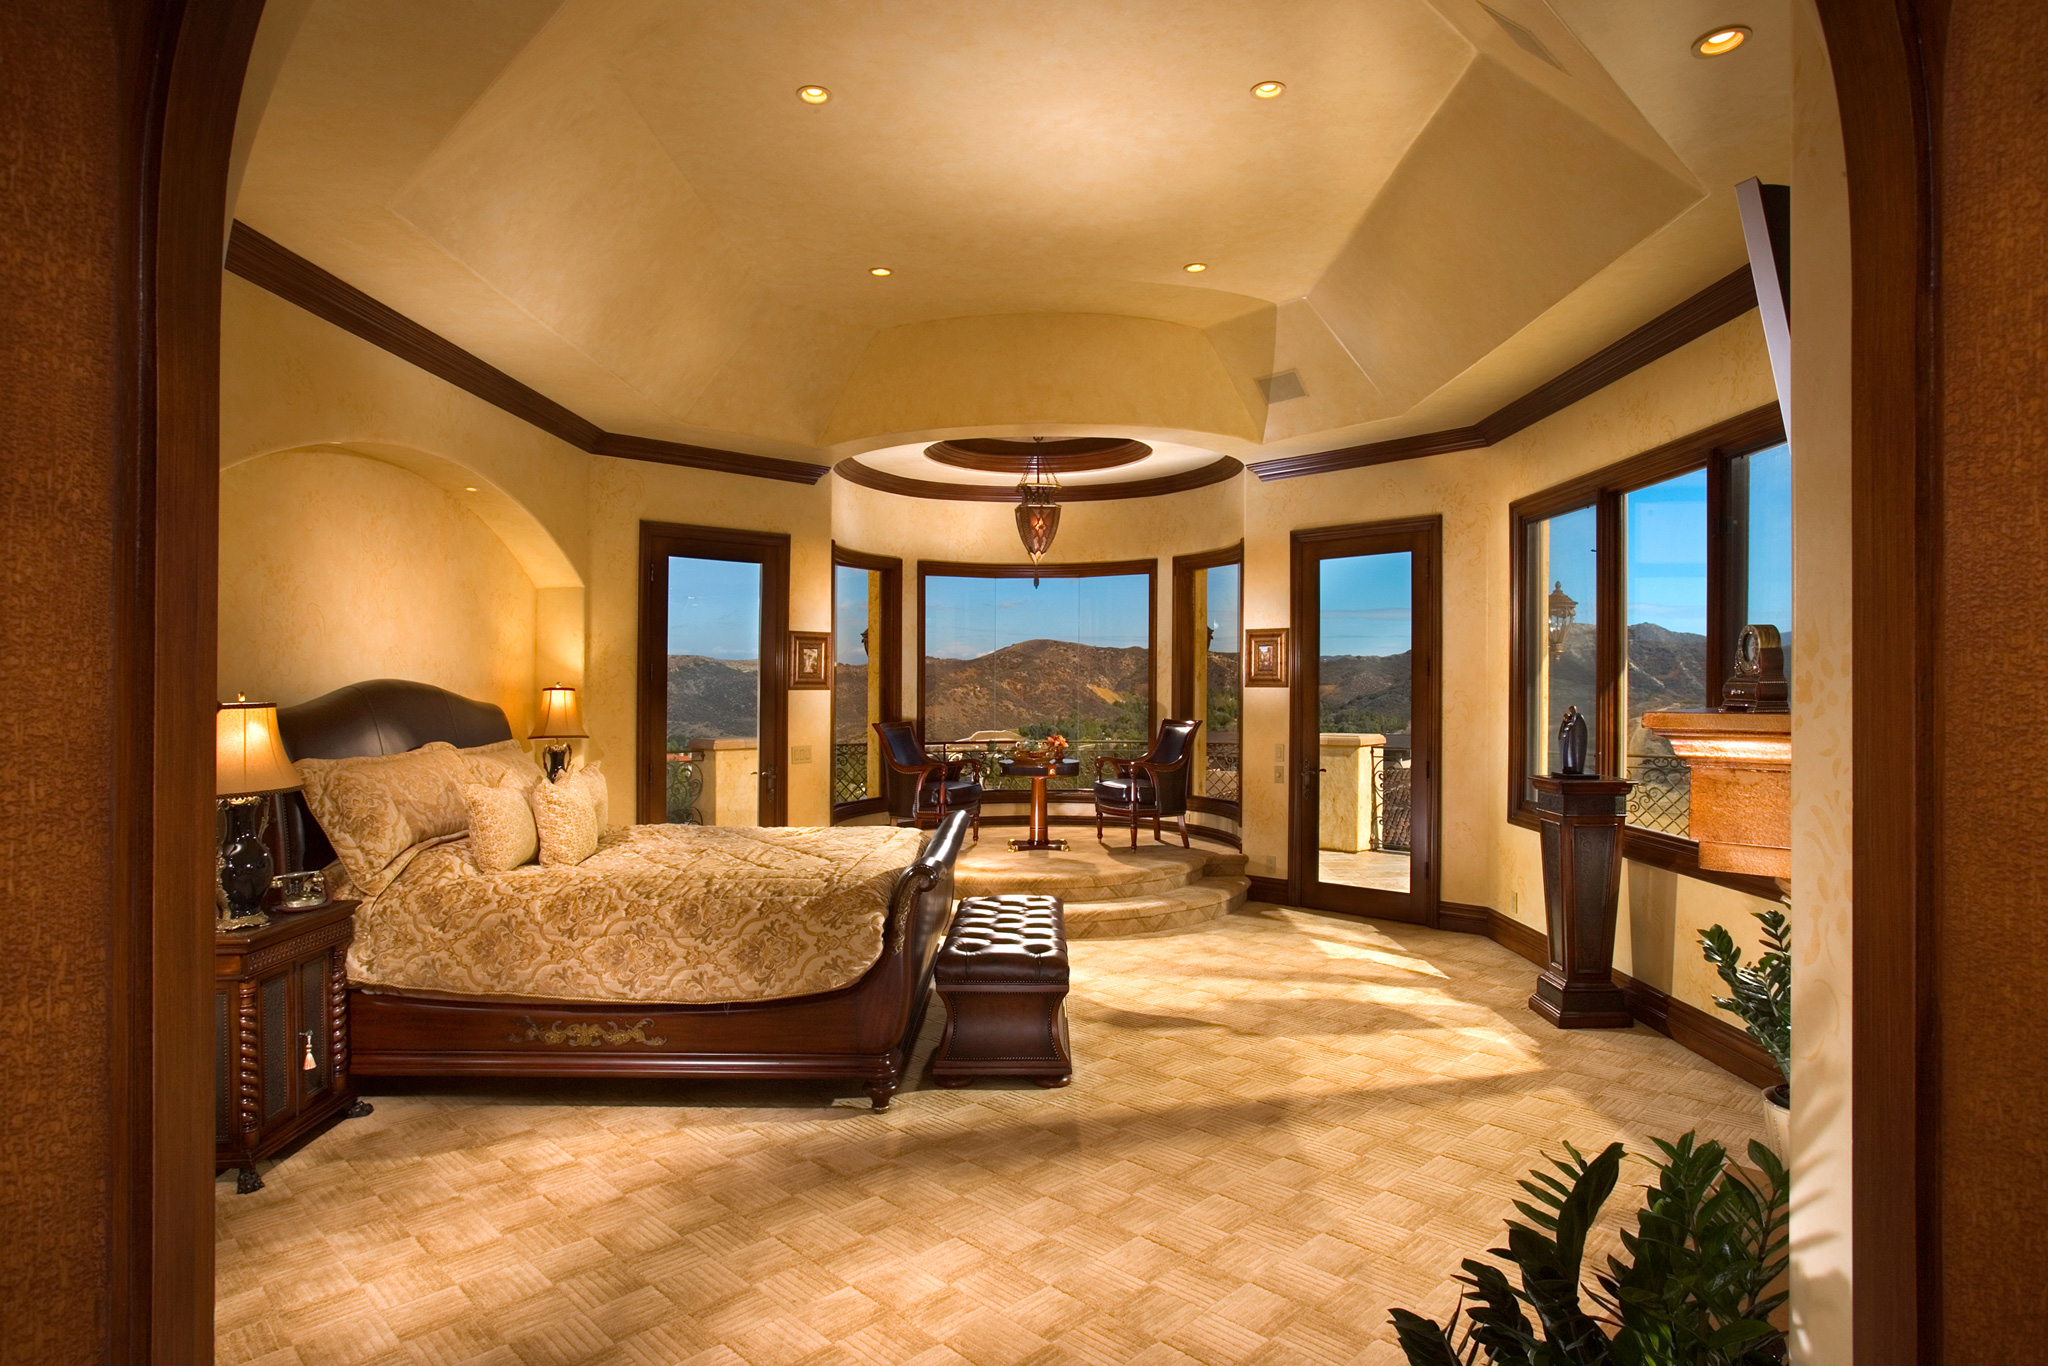 Master bedroom the interior designs for Home bedroom design photos